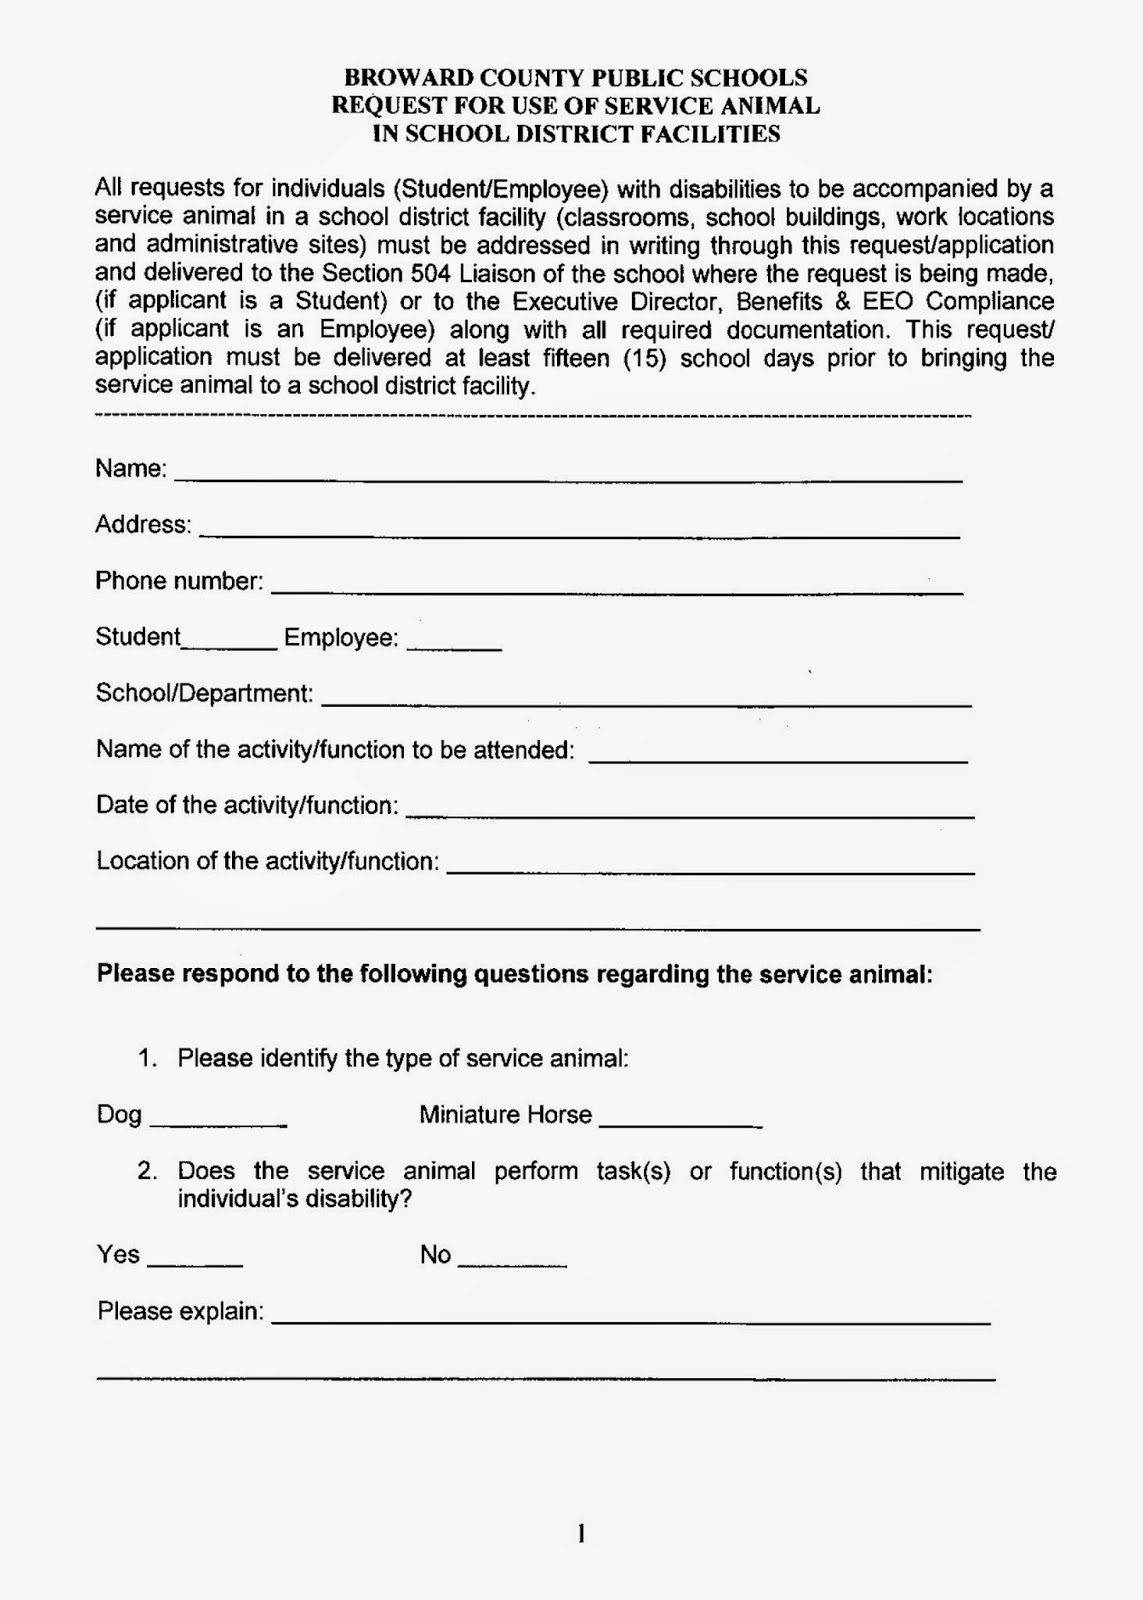 broward county service animal request page 1